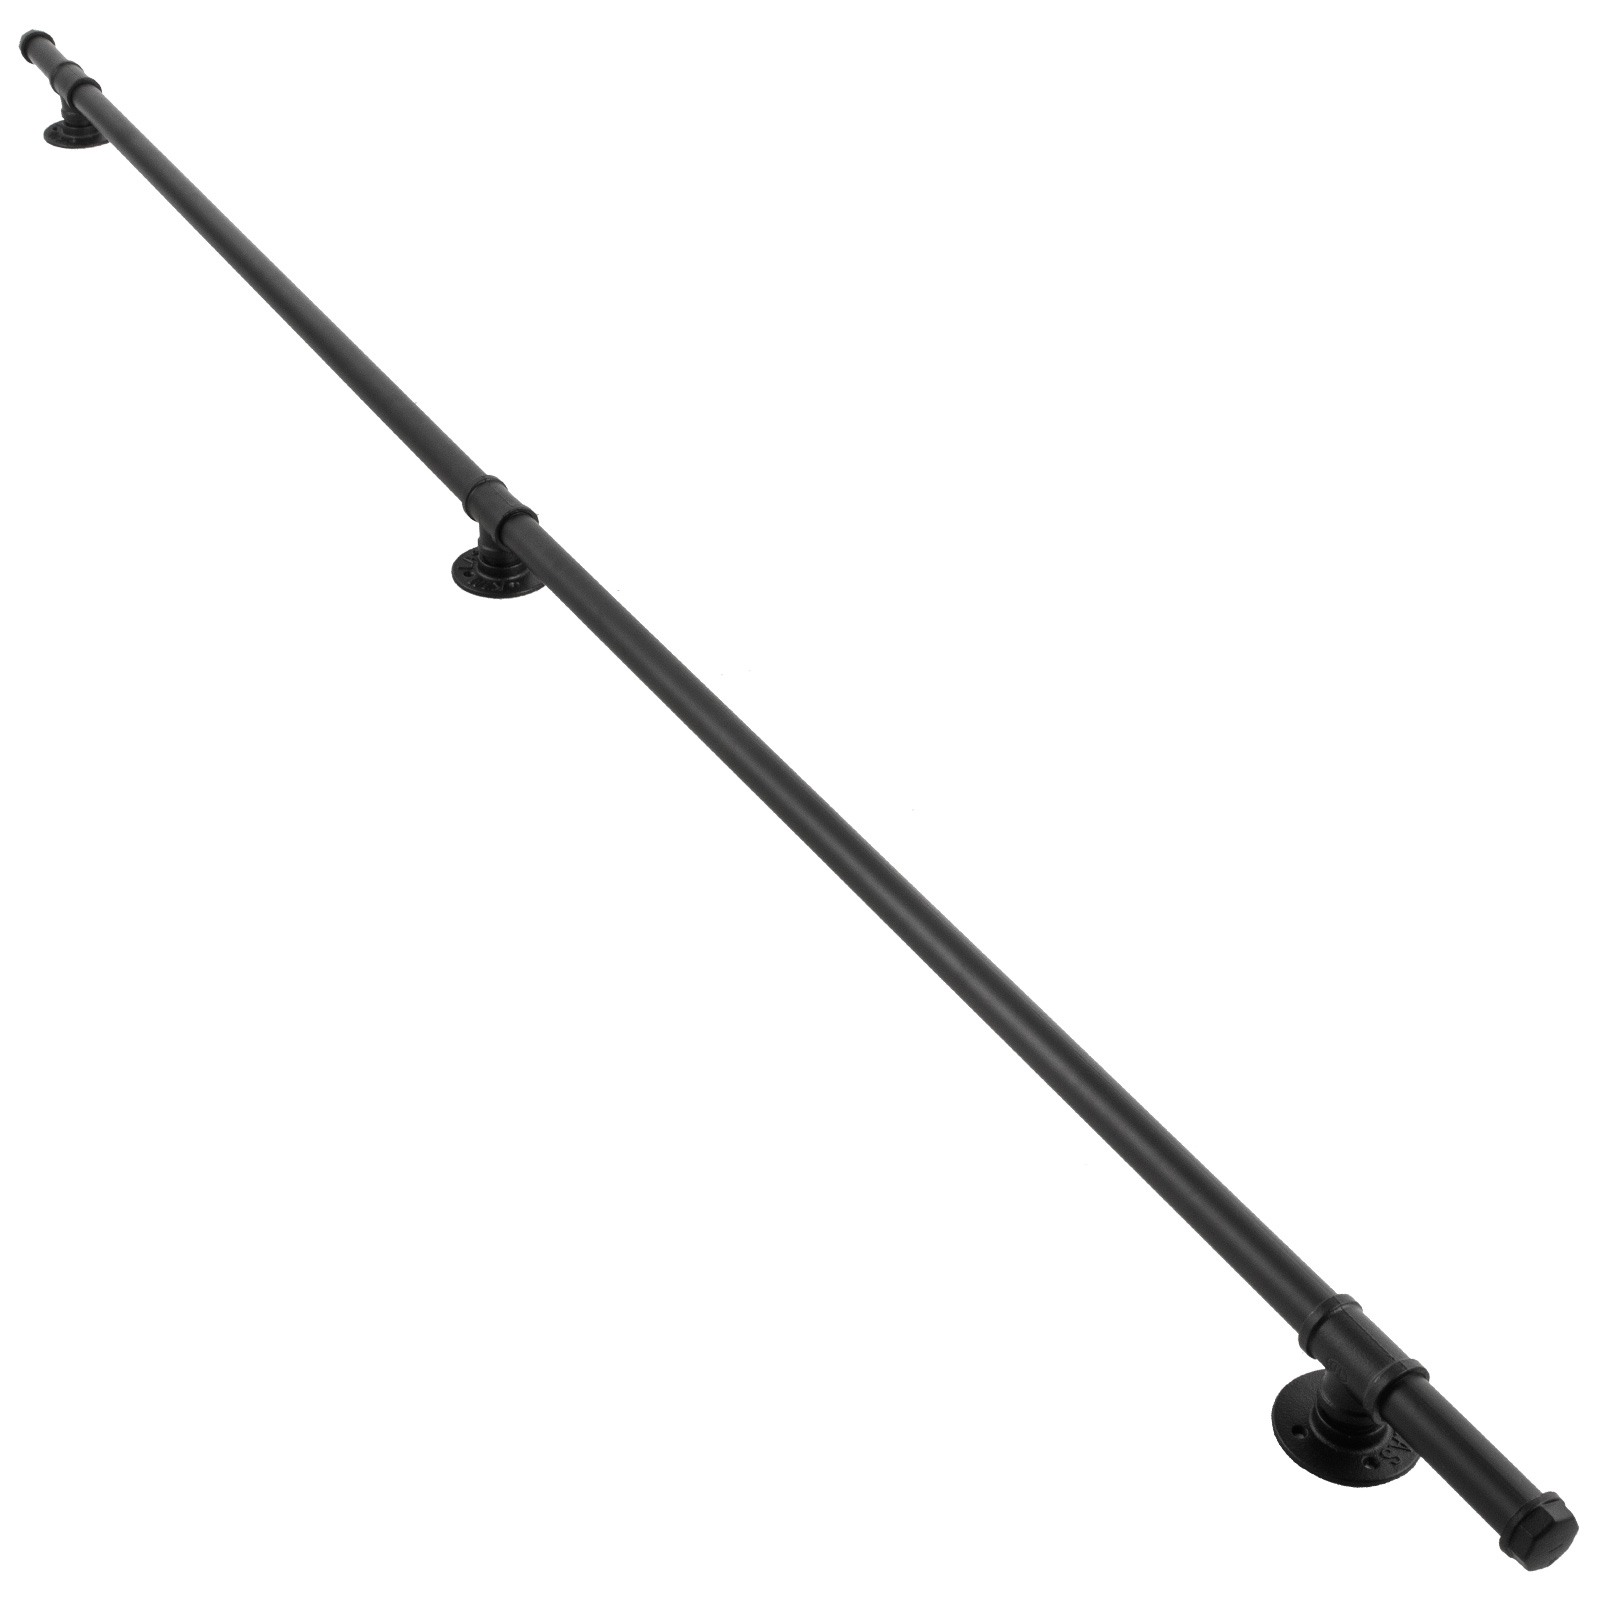 Stair-Handrail-Stair-Rail-3-10ft-Stainless-Steel-Handrail-for-Stairs-200lbs-Load thumbnail 33